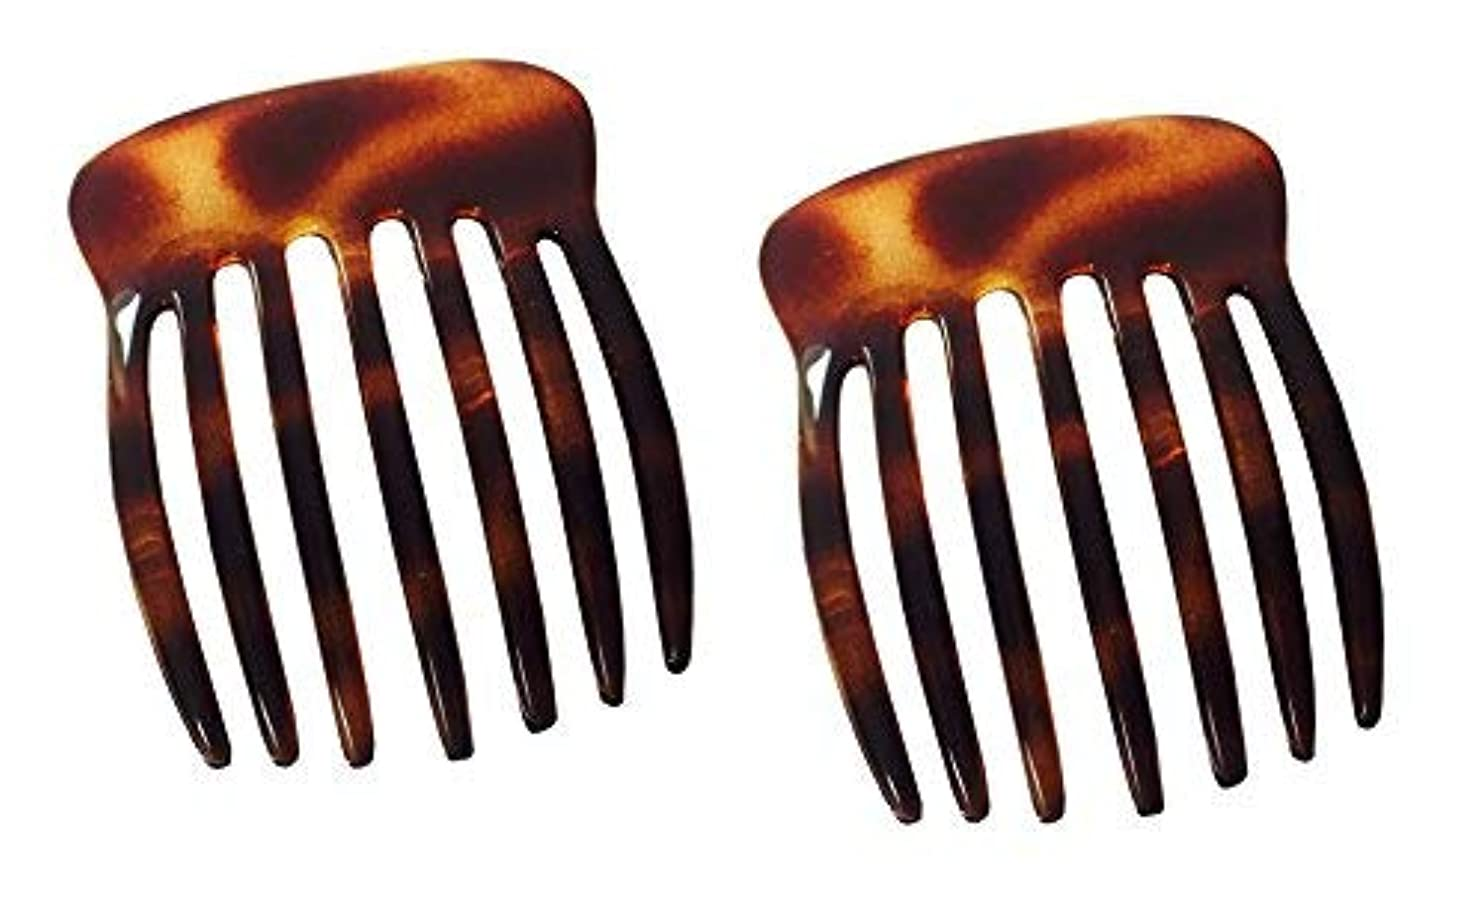 オーナメント完了つなぐParcelona French Fingers Seven Teeth Large 2 Pieces Celluloid Acetate Tortoise Shell Hair Side Hair Combs [並行輸入品]